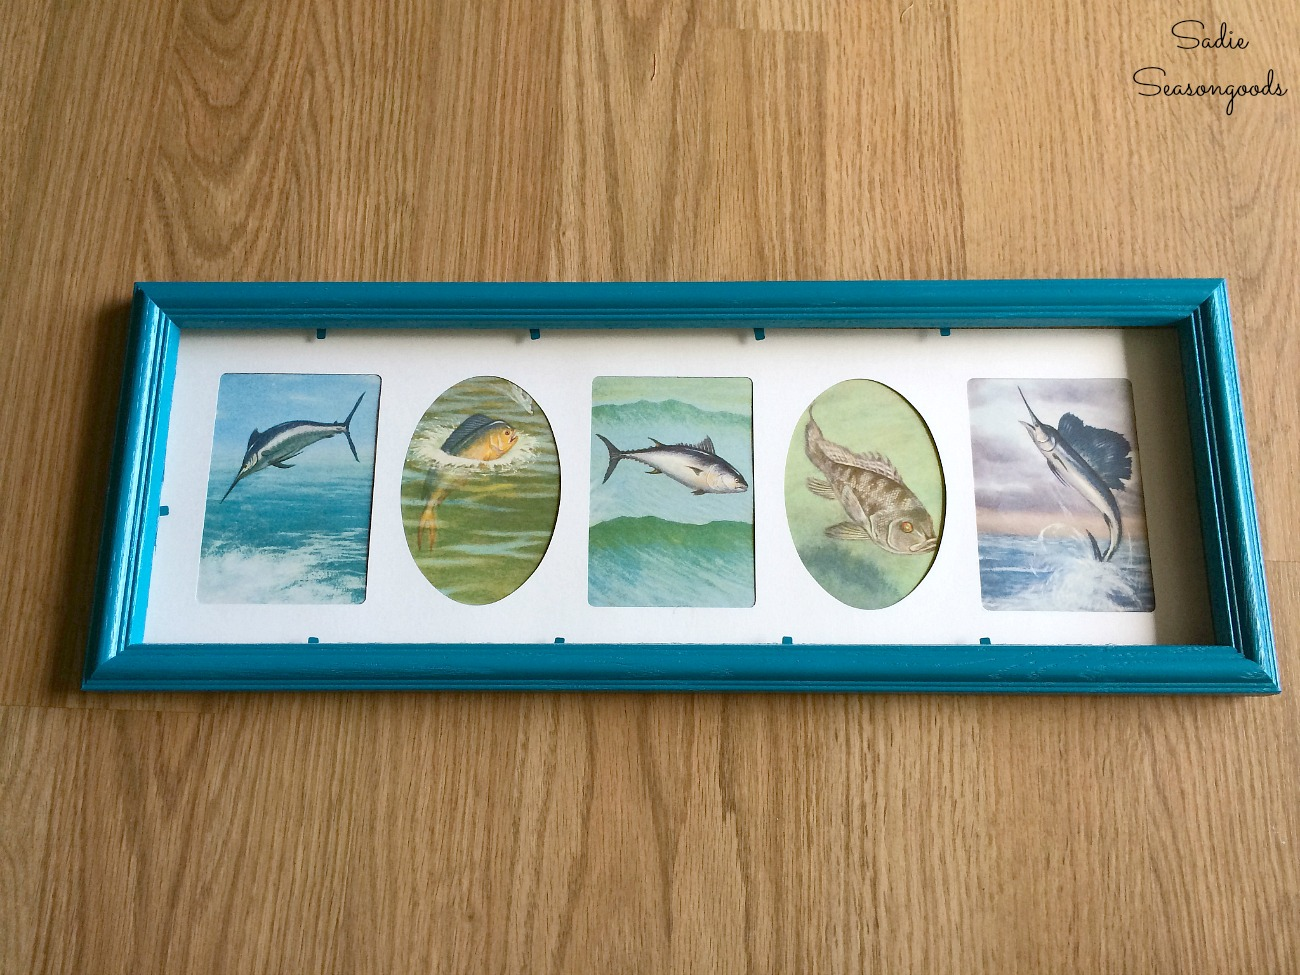 Spray painting a wooden picture frame or collage photo frame to become some coastal wall decor by Sadie Seasongoods